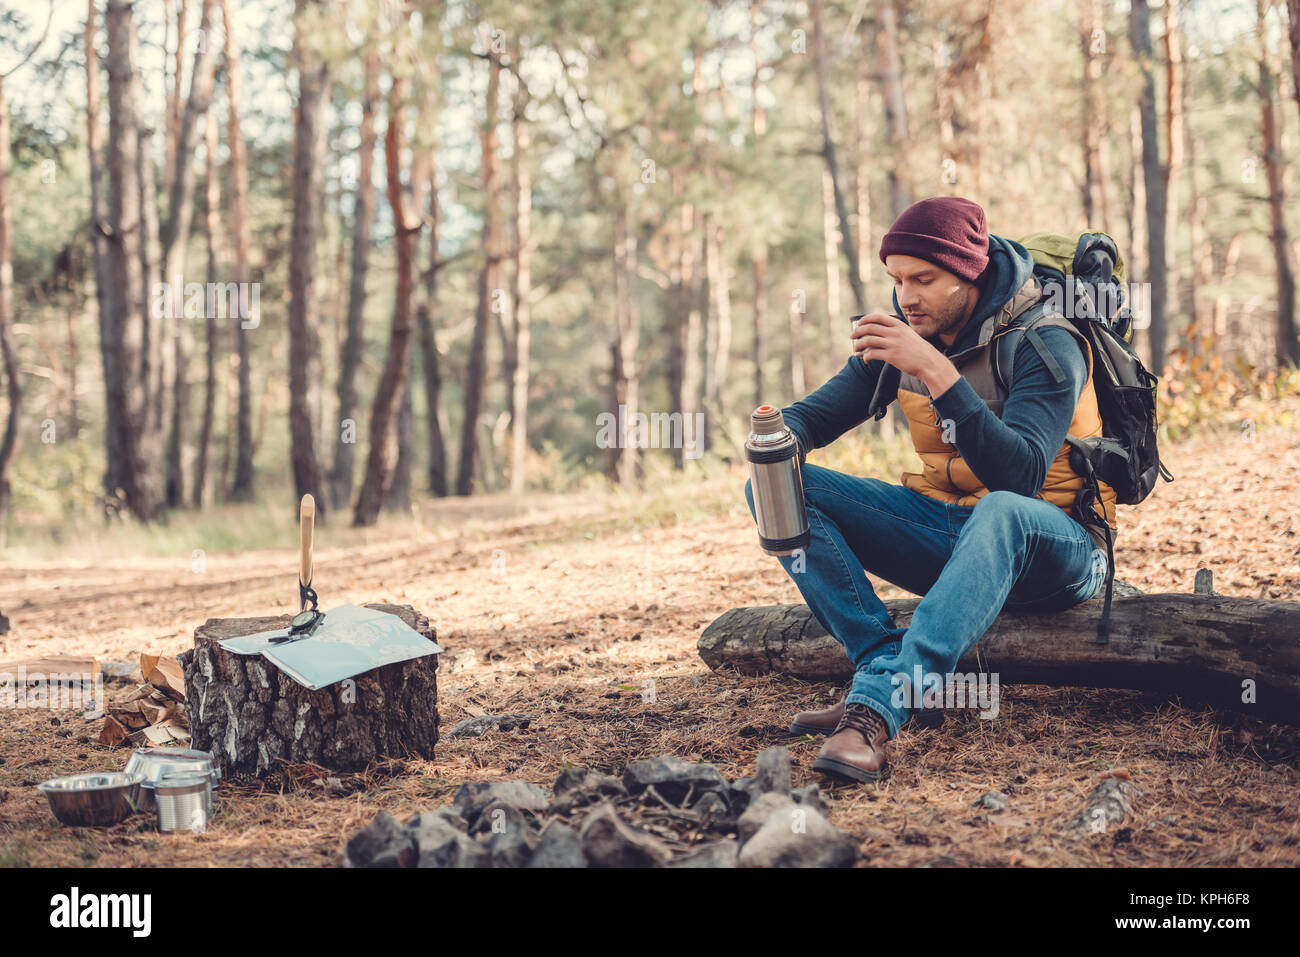 man drinking tea in forest - Stock Image